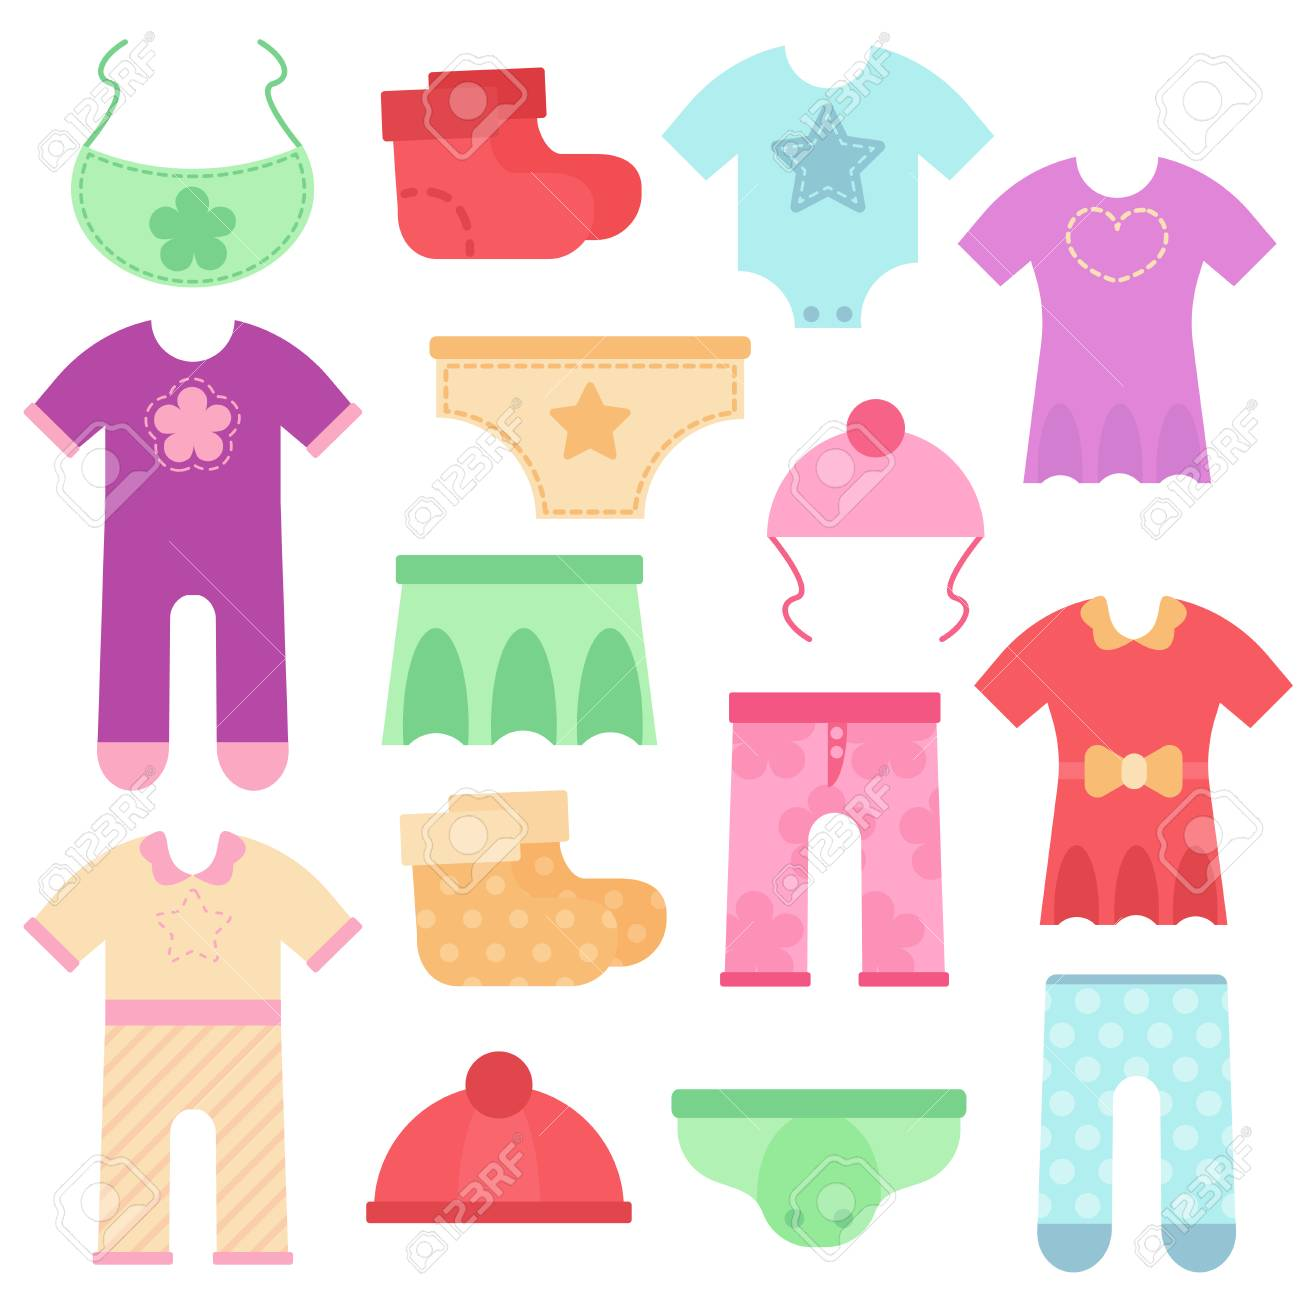 6d32a0ccd5e2 Baby Clothes. Kids Colorful And Bright Bodysuits And Overalls ...